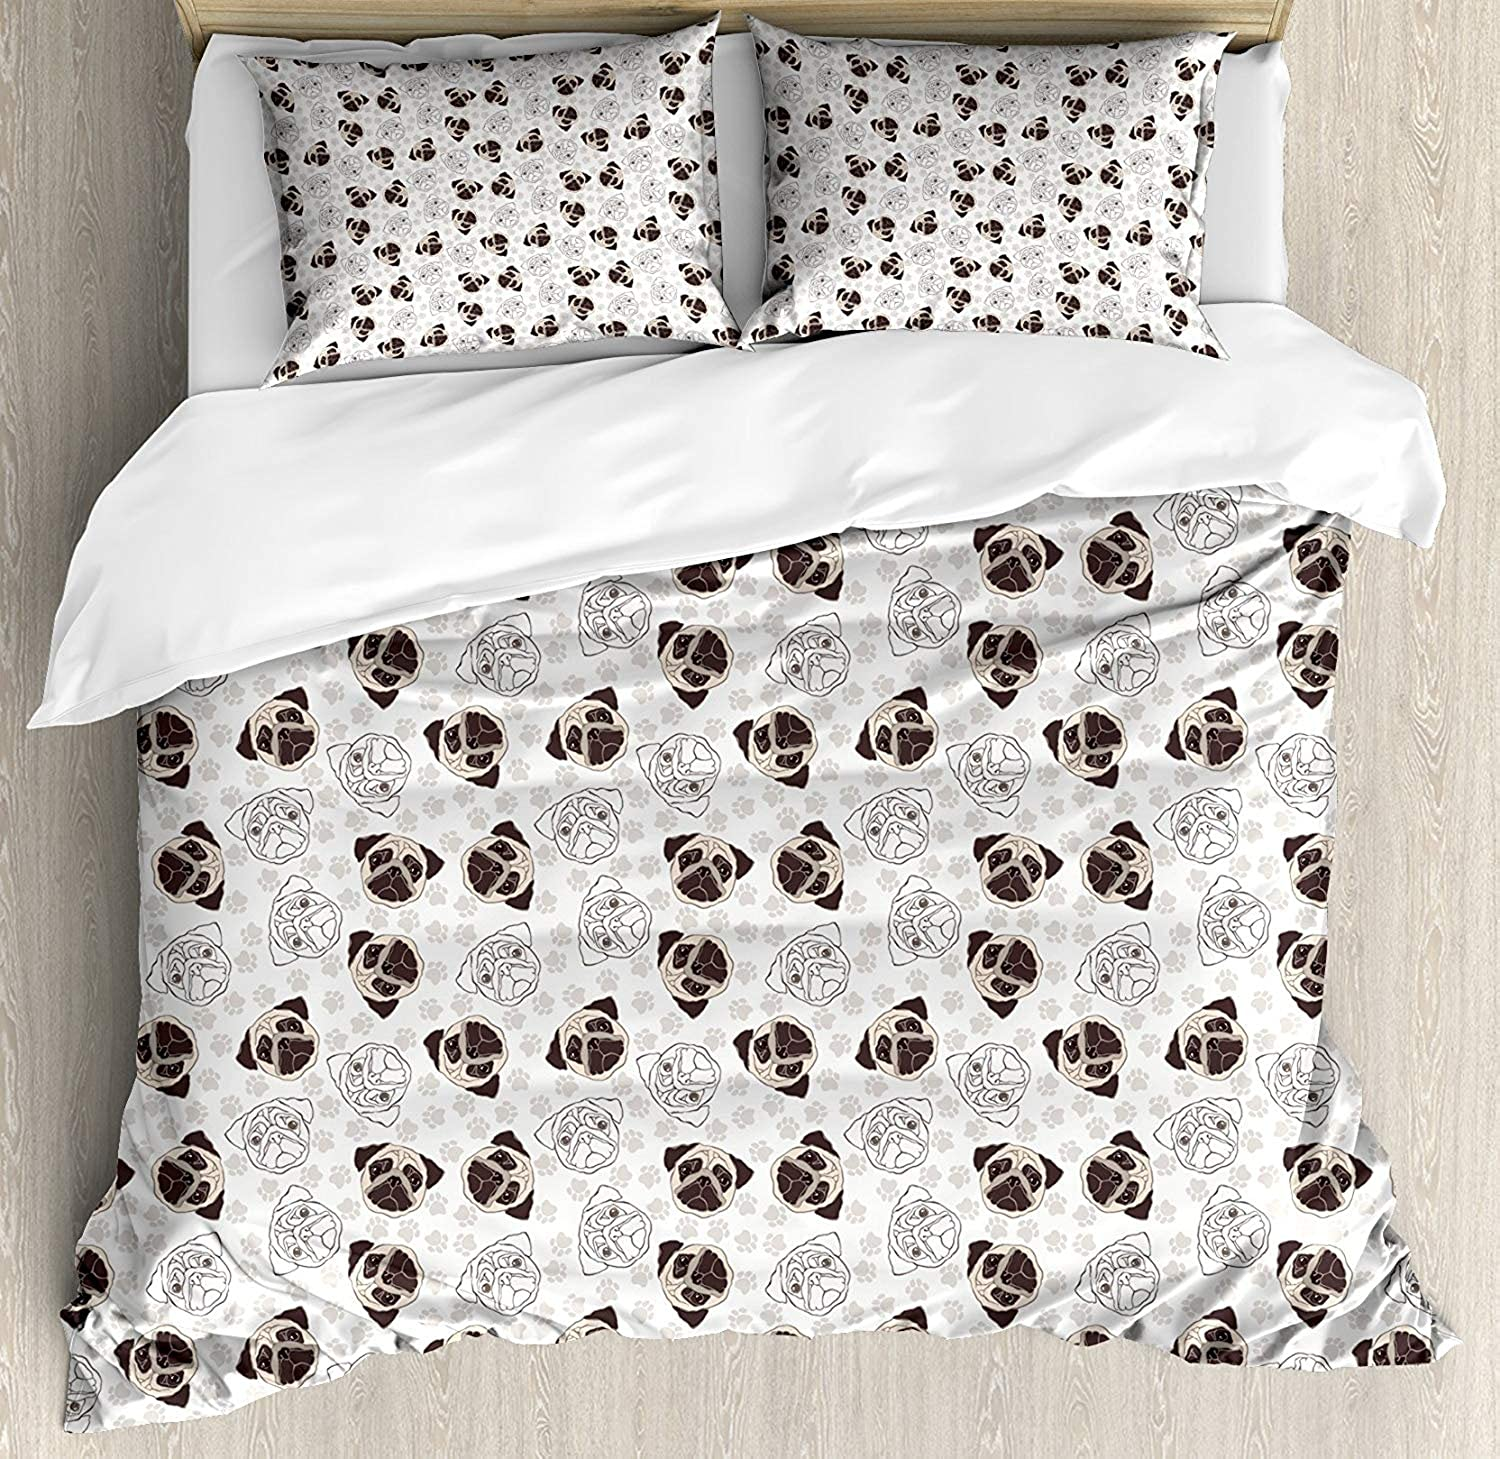 OxOHome Dog Bedding SetsPug Portraits Traces Paw Print Background Canine Pet Illustration Mammal Animal Duvet Cover Sets Beige Brown Tan Twin Bedding Comforter Cover Sets Soft Bedding Collections